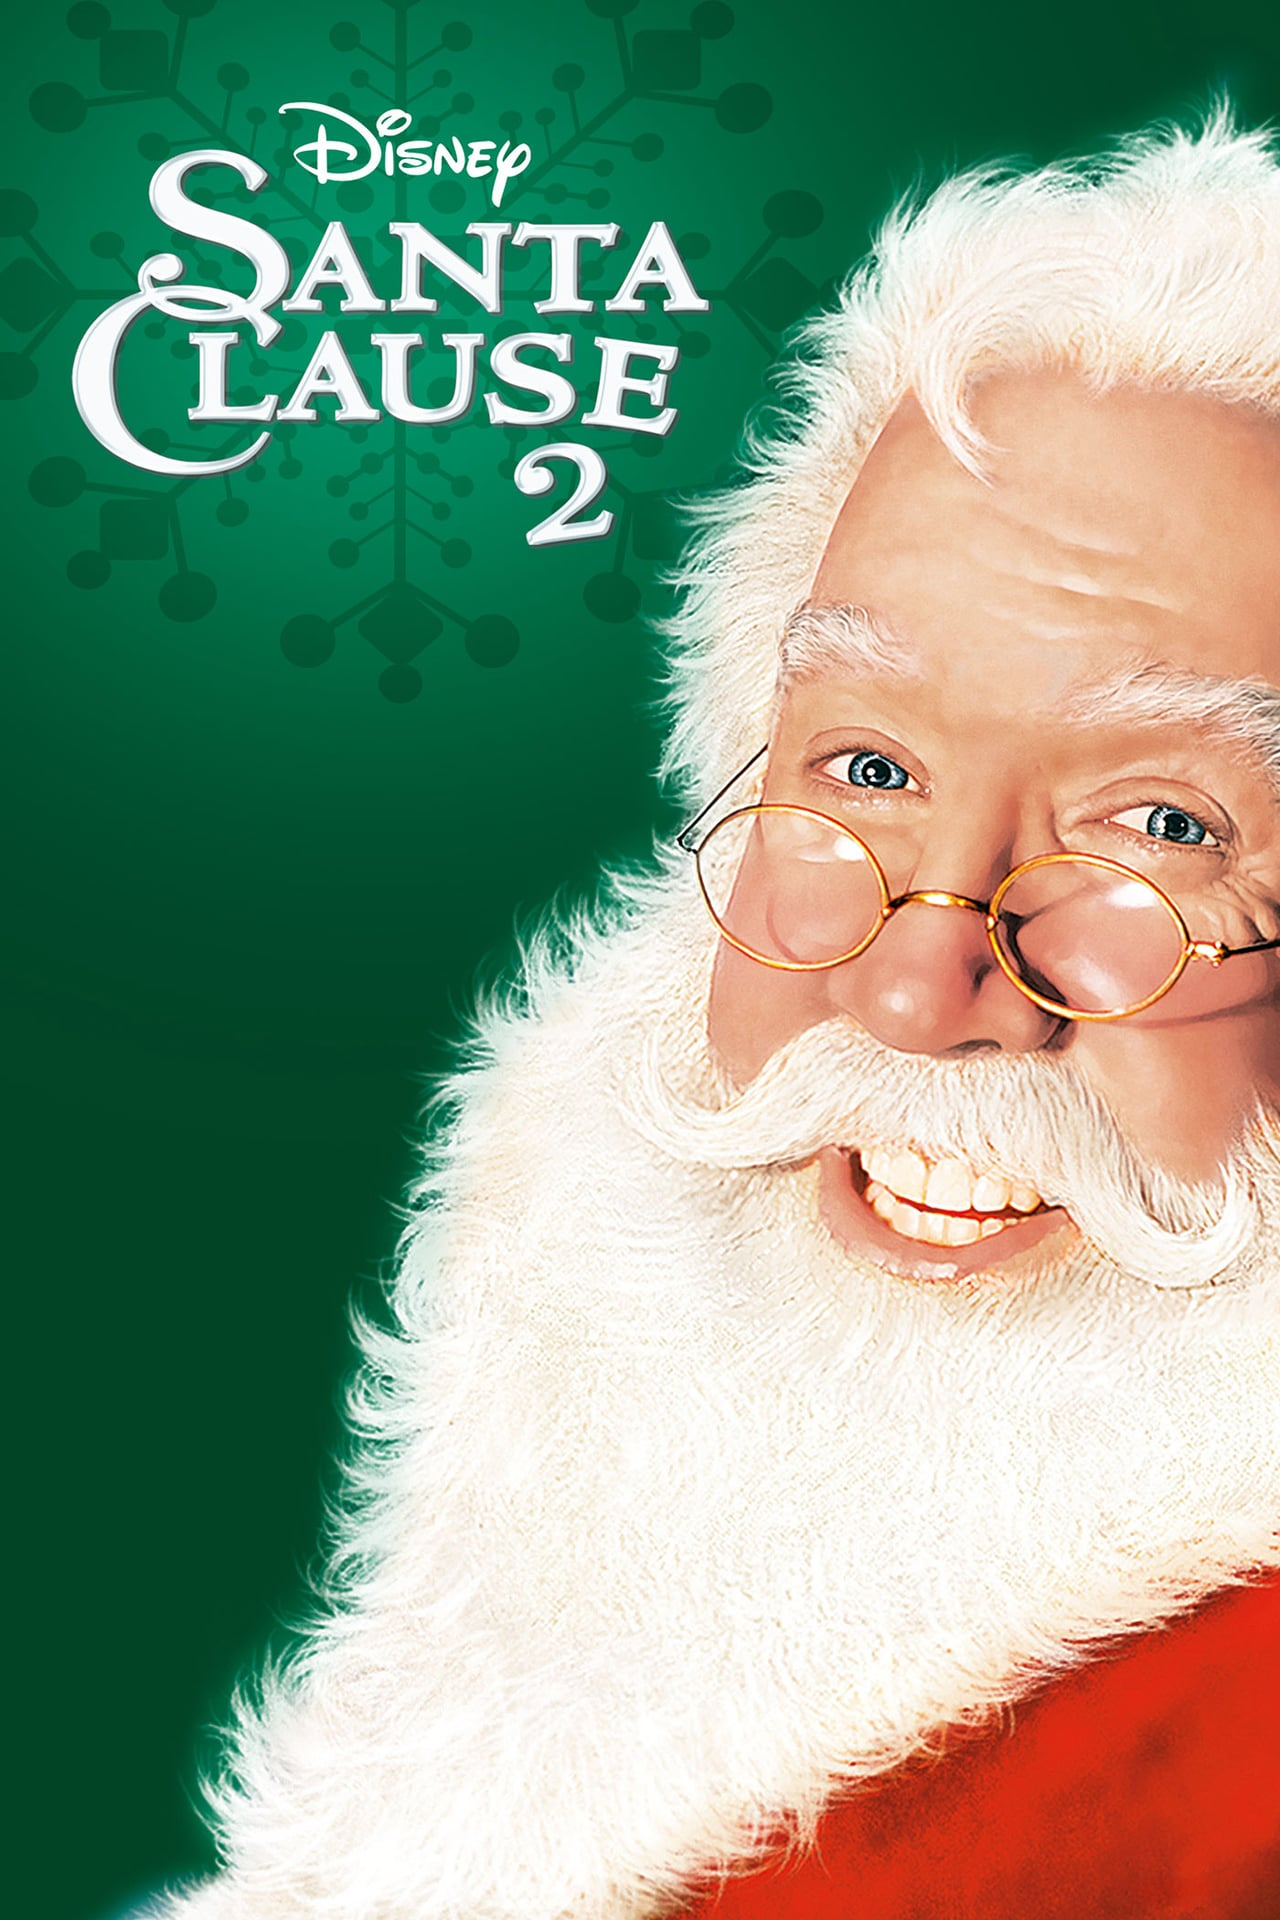 The Santa Clause 2 Movie Poster